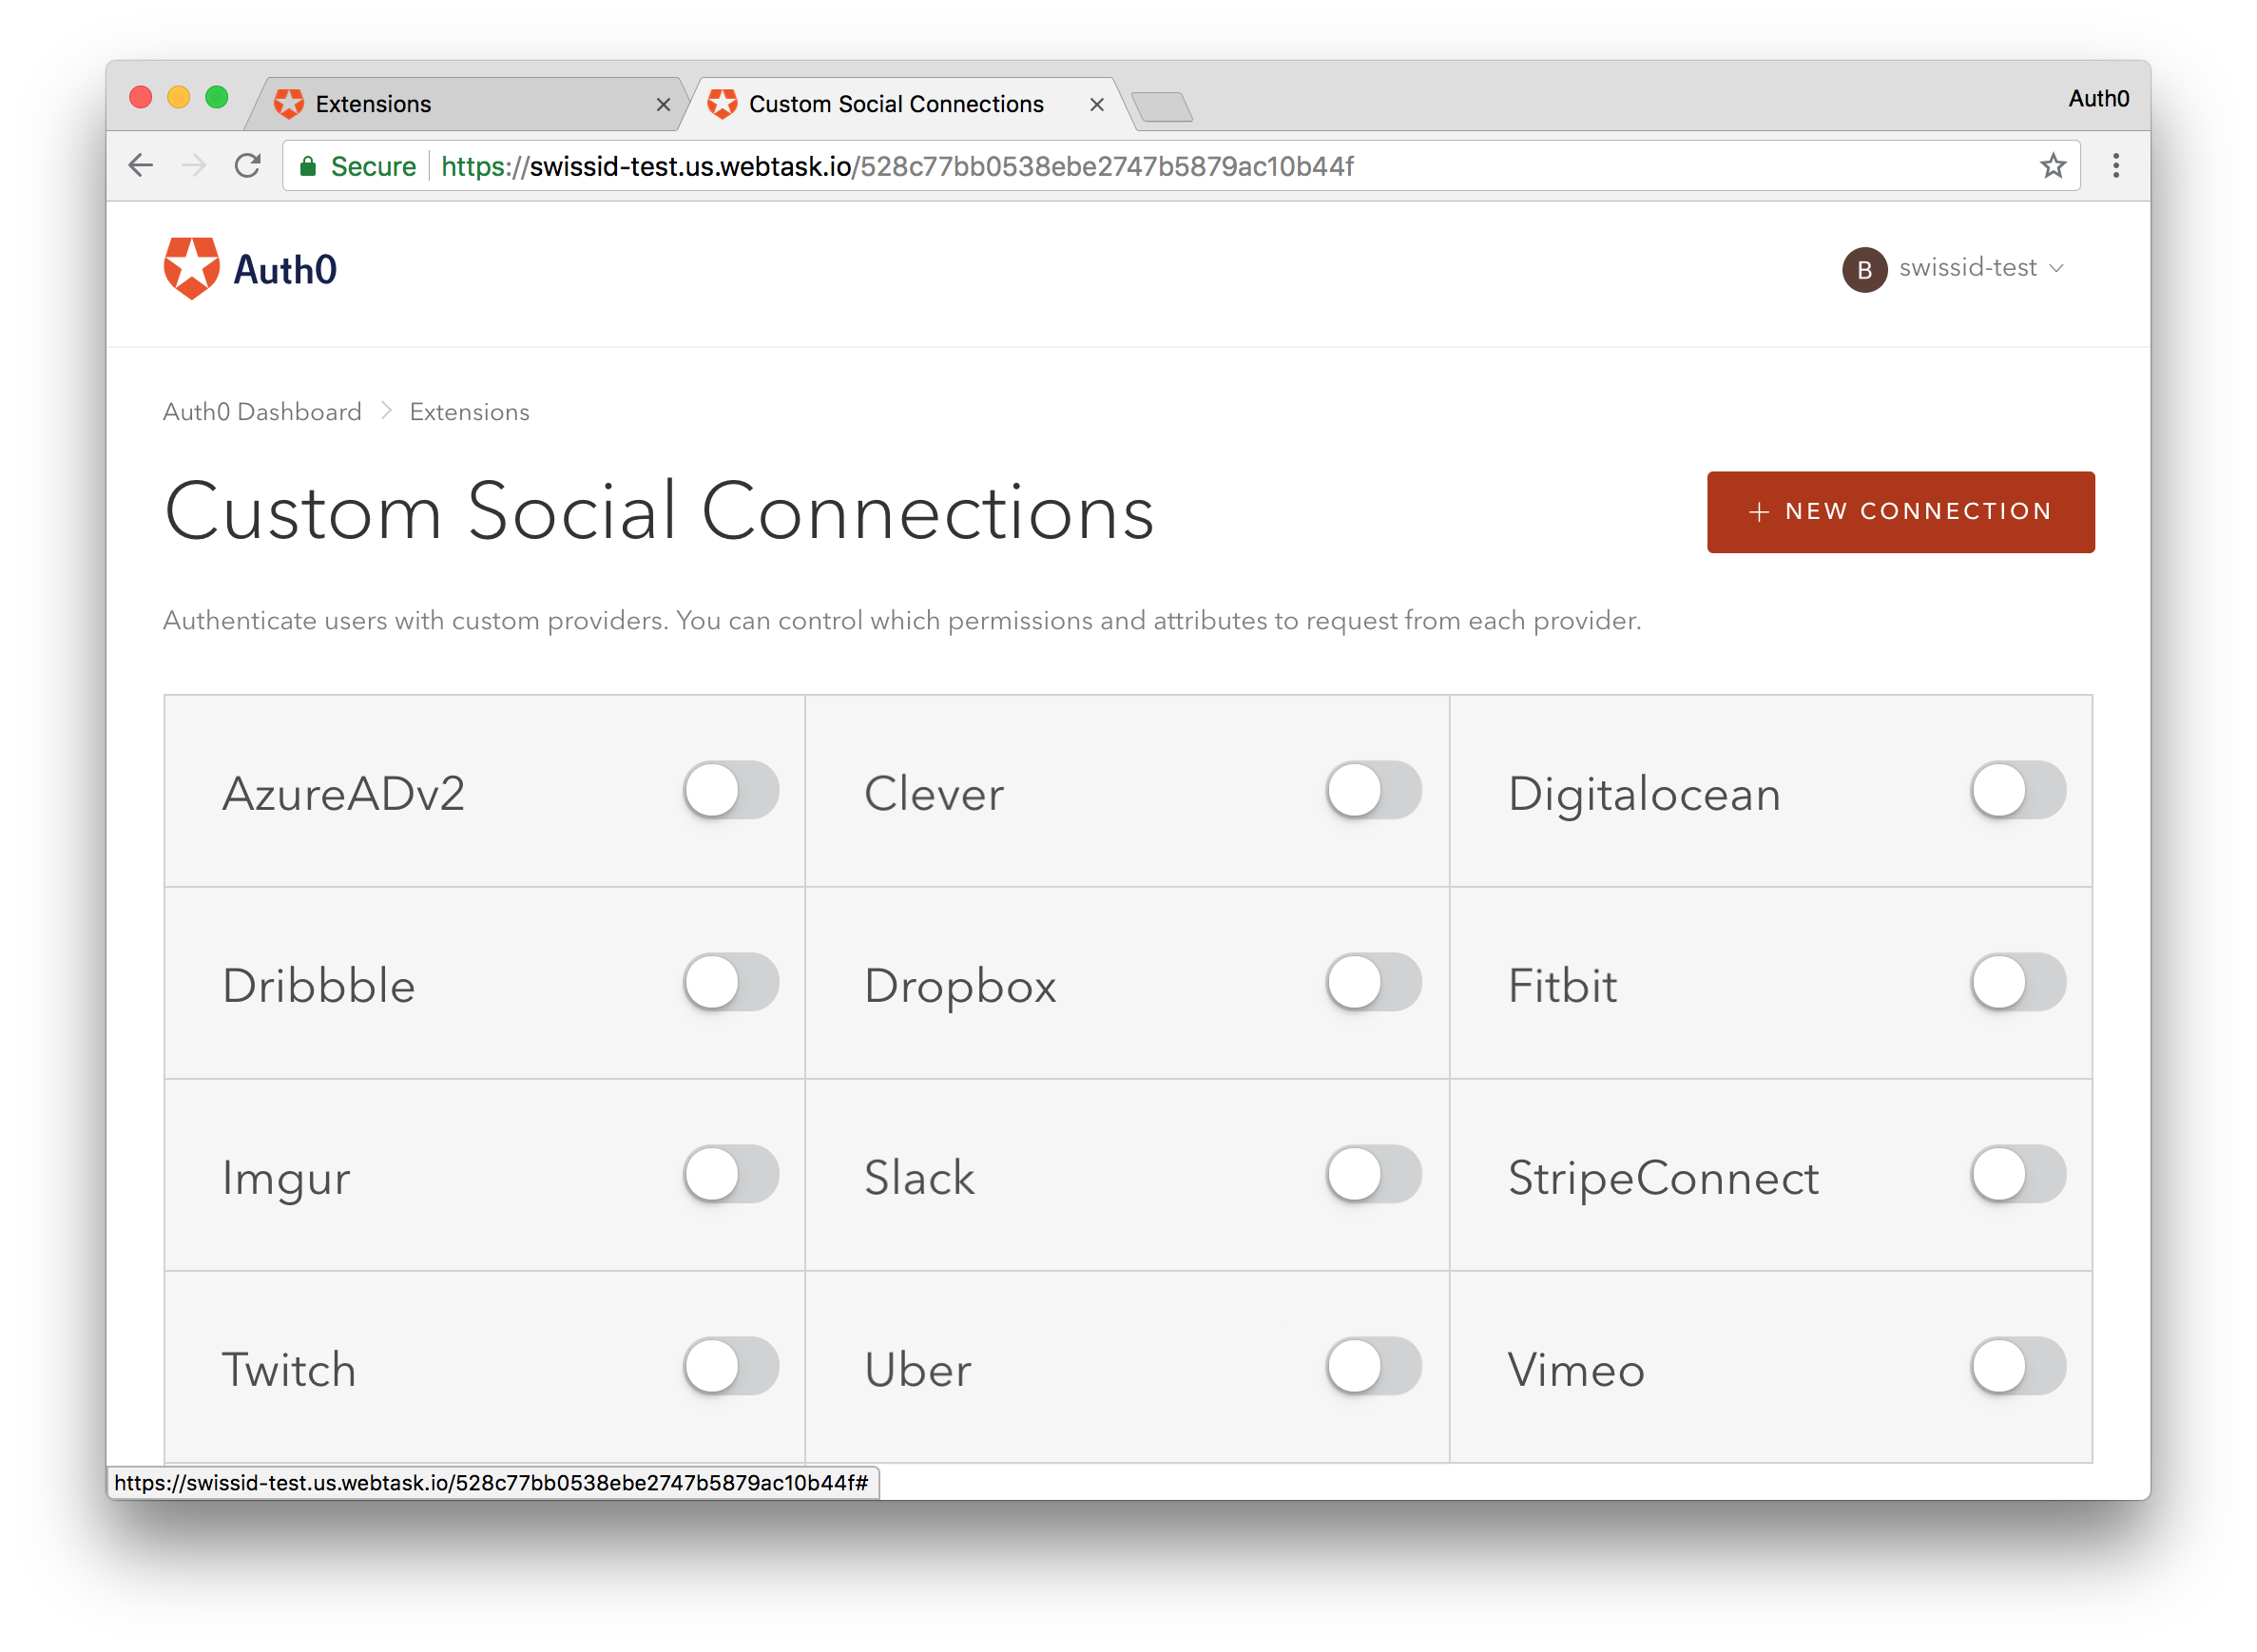 The Custom Social Connection extension' deployment